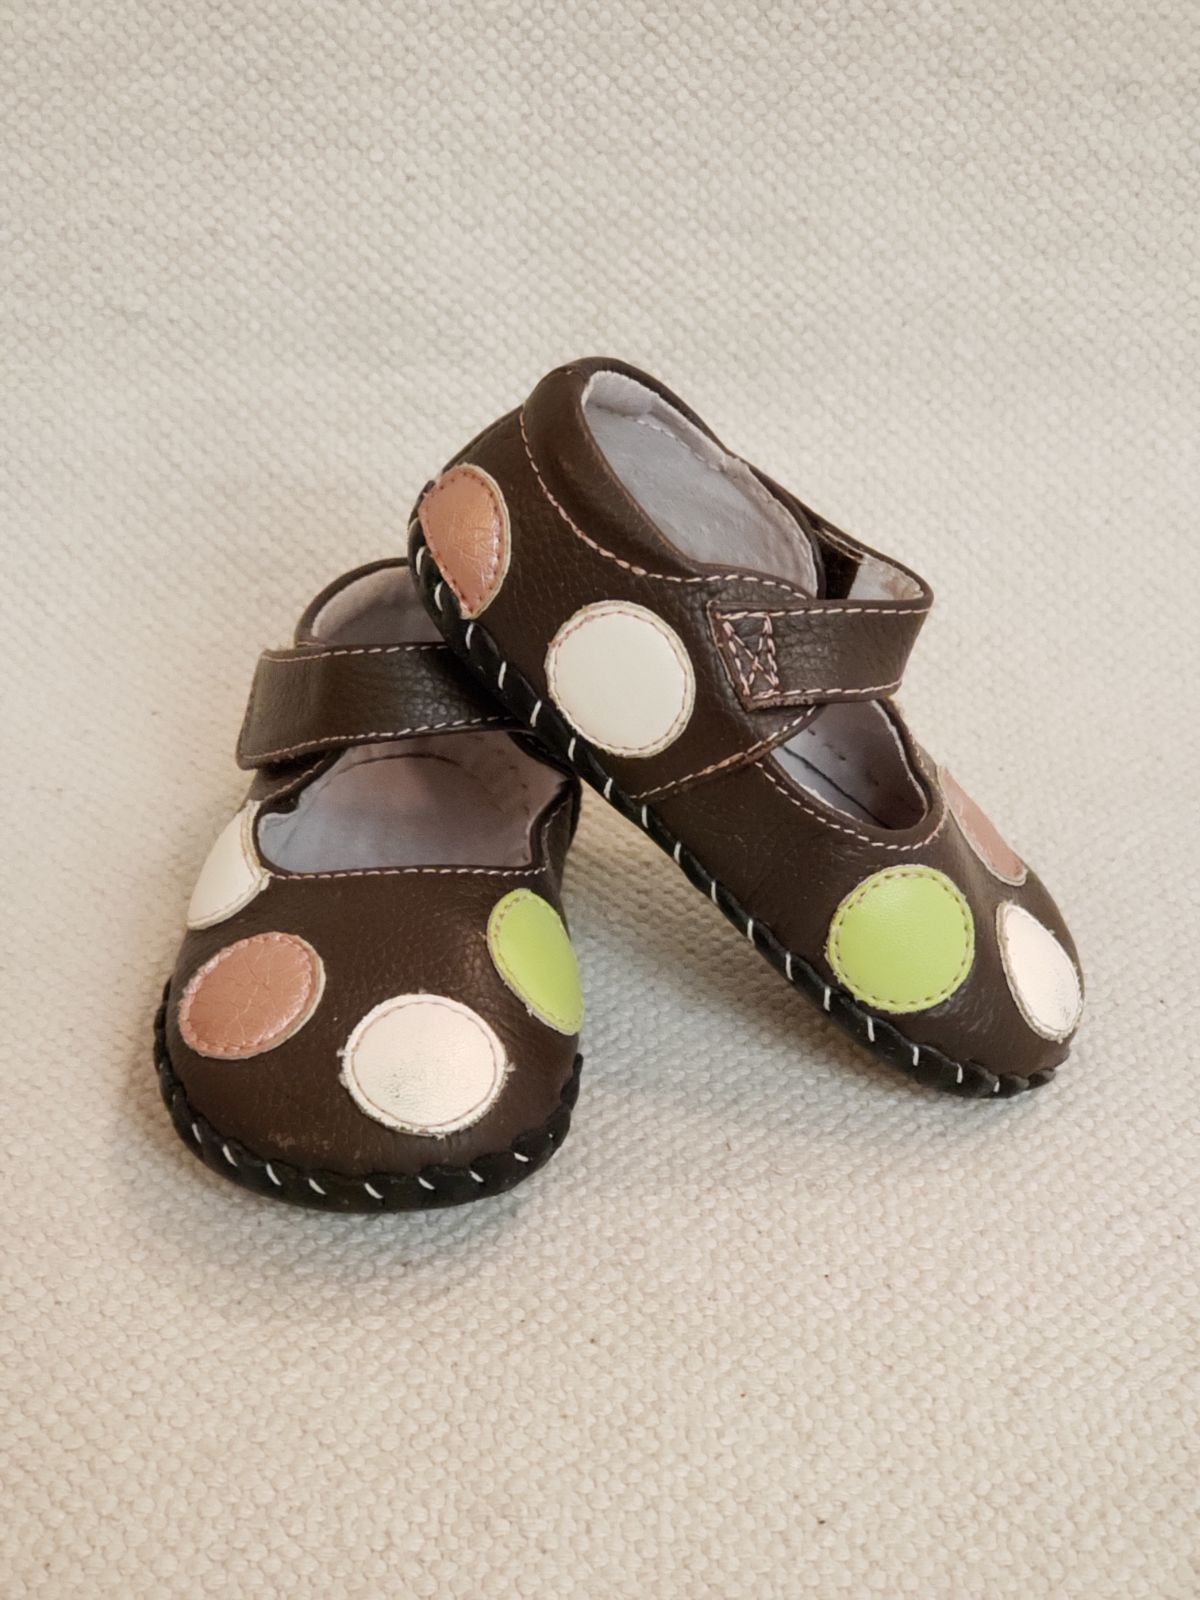 Pediped Toddler Girls Shoes 12-18 months